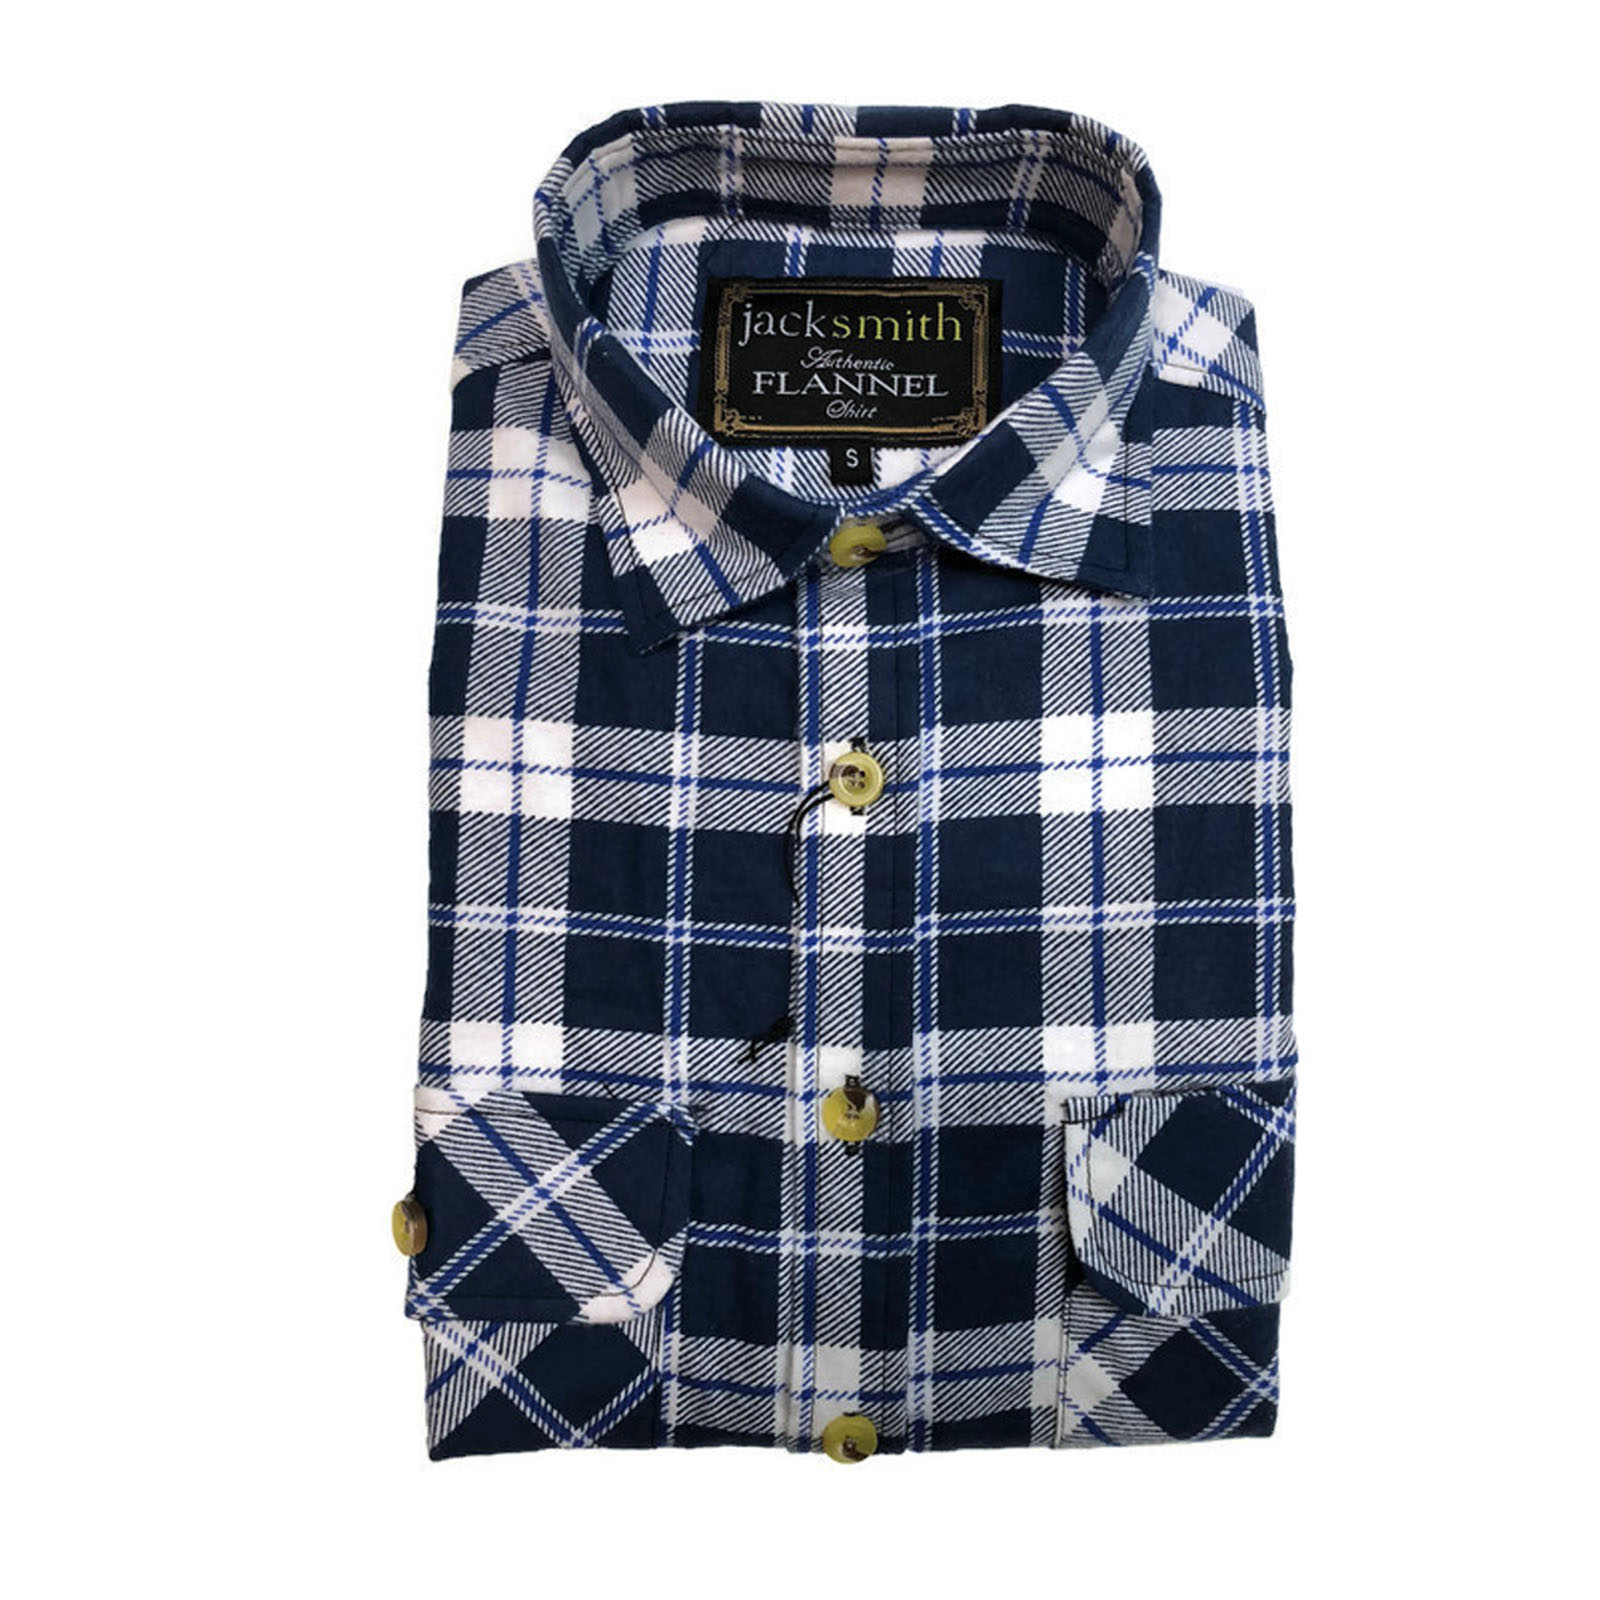 Men-039-s-Flannelette-Shirt-100-Cotton-Check-Authentic-Flannel-Long-Sleeve-Vintage thumbnail 14